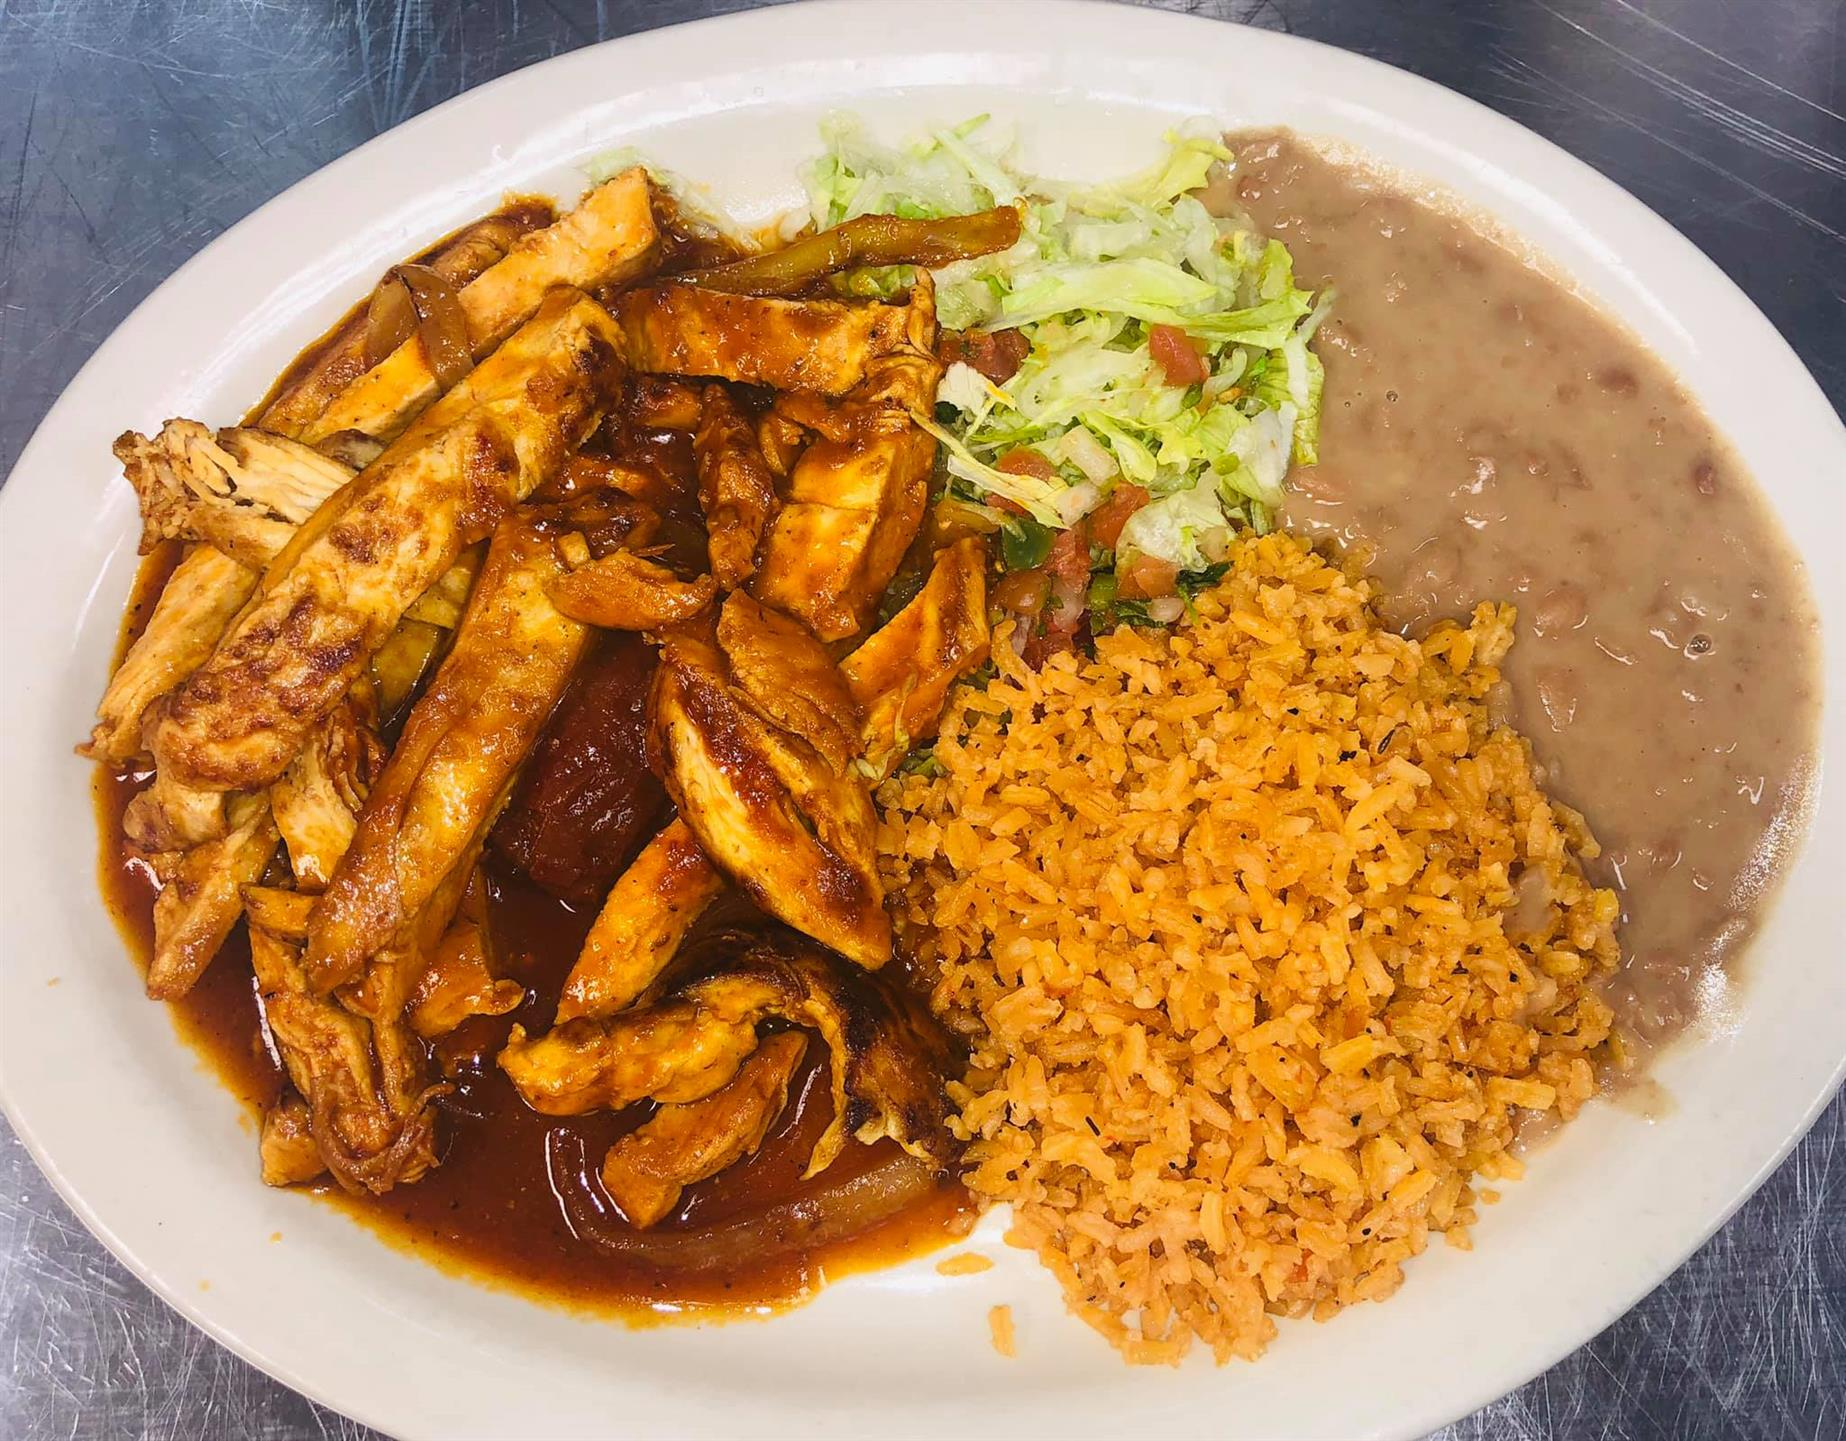 Chipotle chicken with rice and beans on a plate